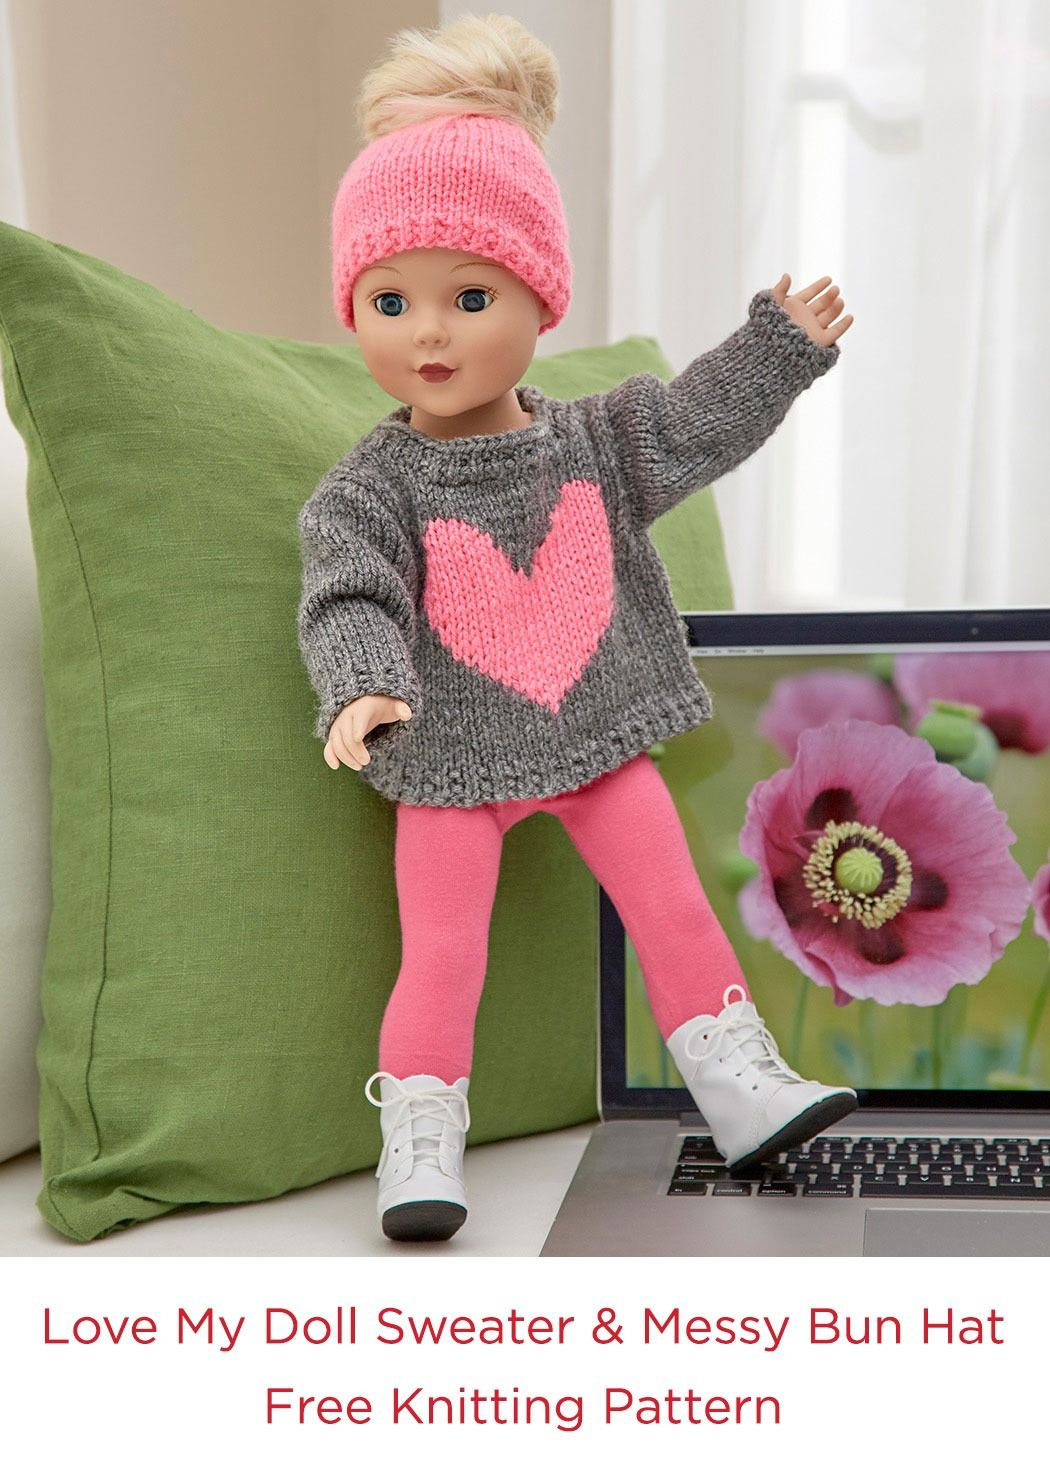 Love My Doll Sweater & Messy Bun Hat Free Knitting Pattern in Red ...